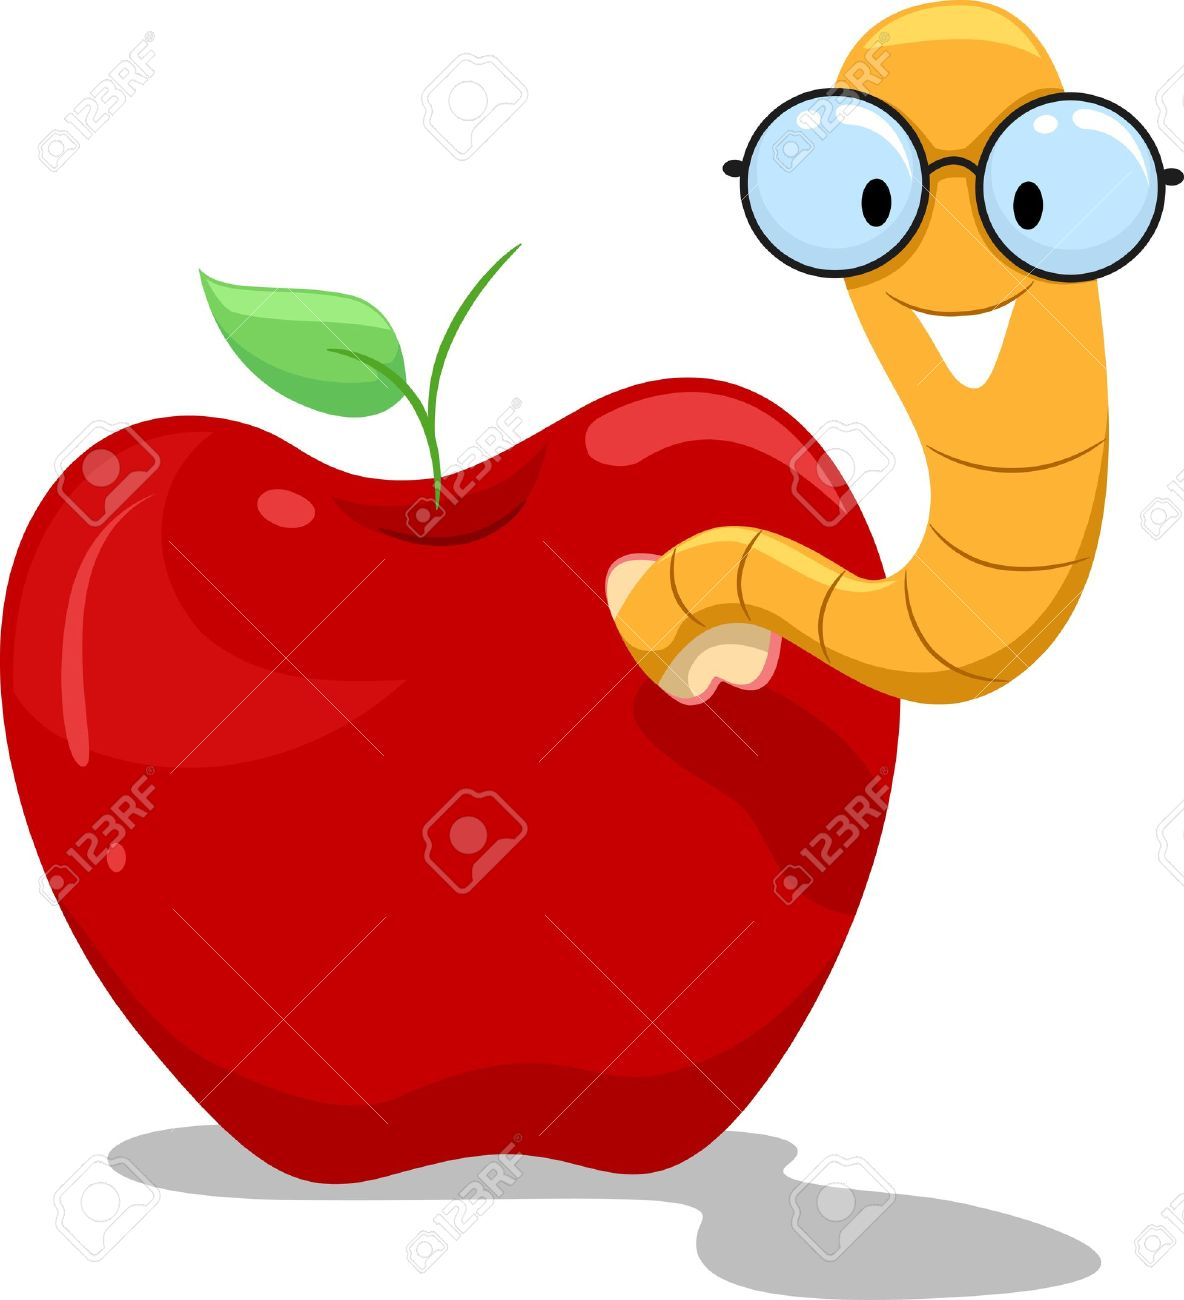 Illustration of a Nerdy Worm Crawling Out of an Apple - 15590891